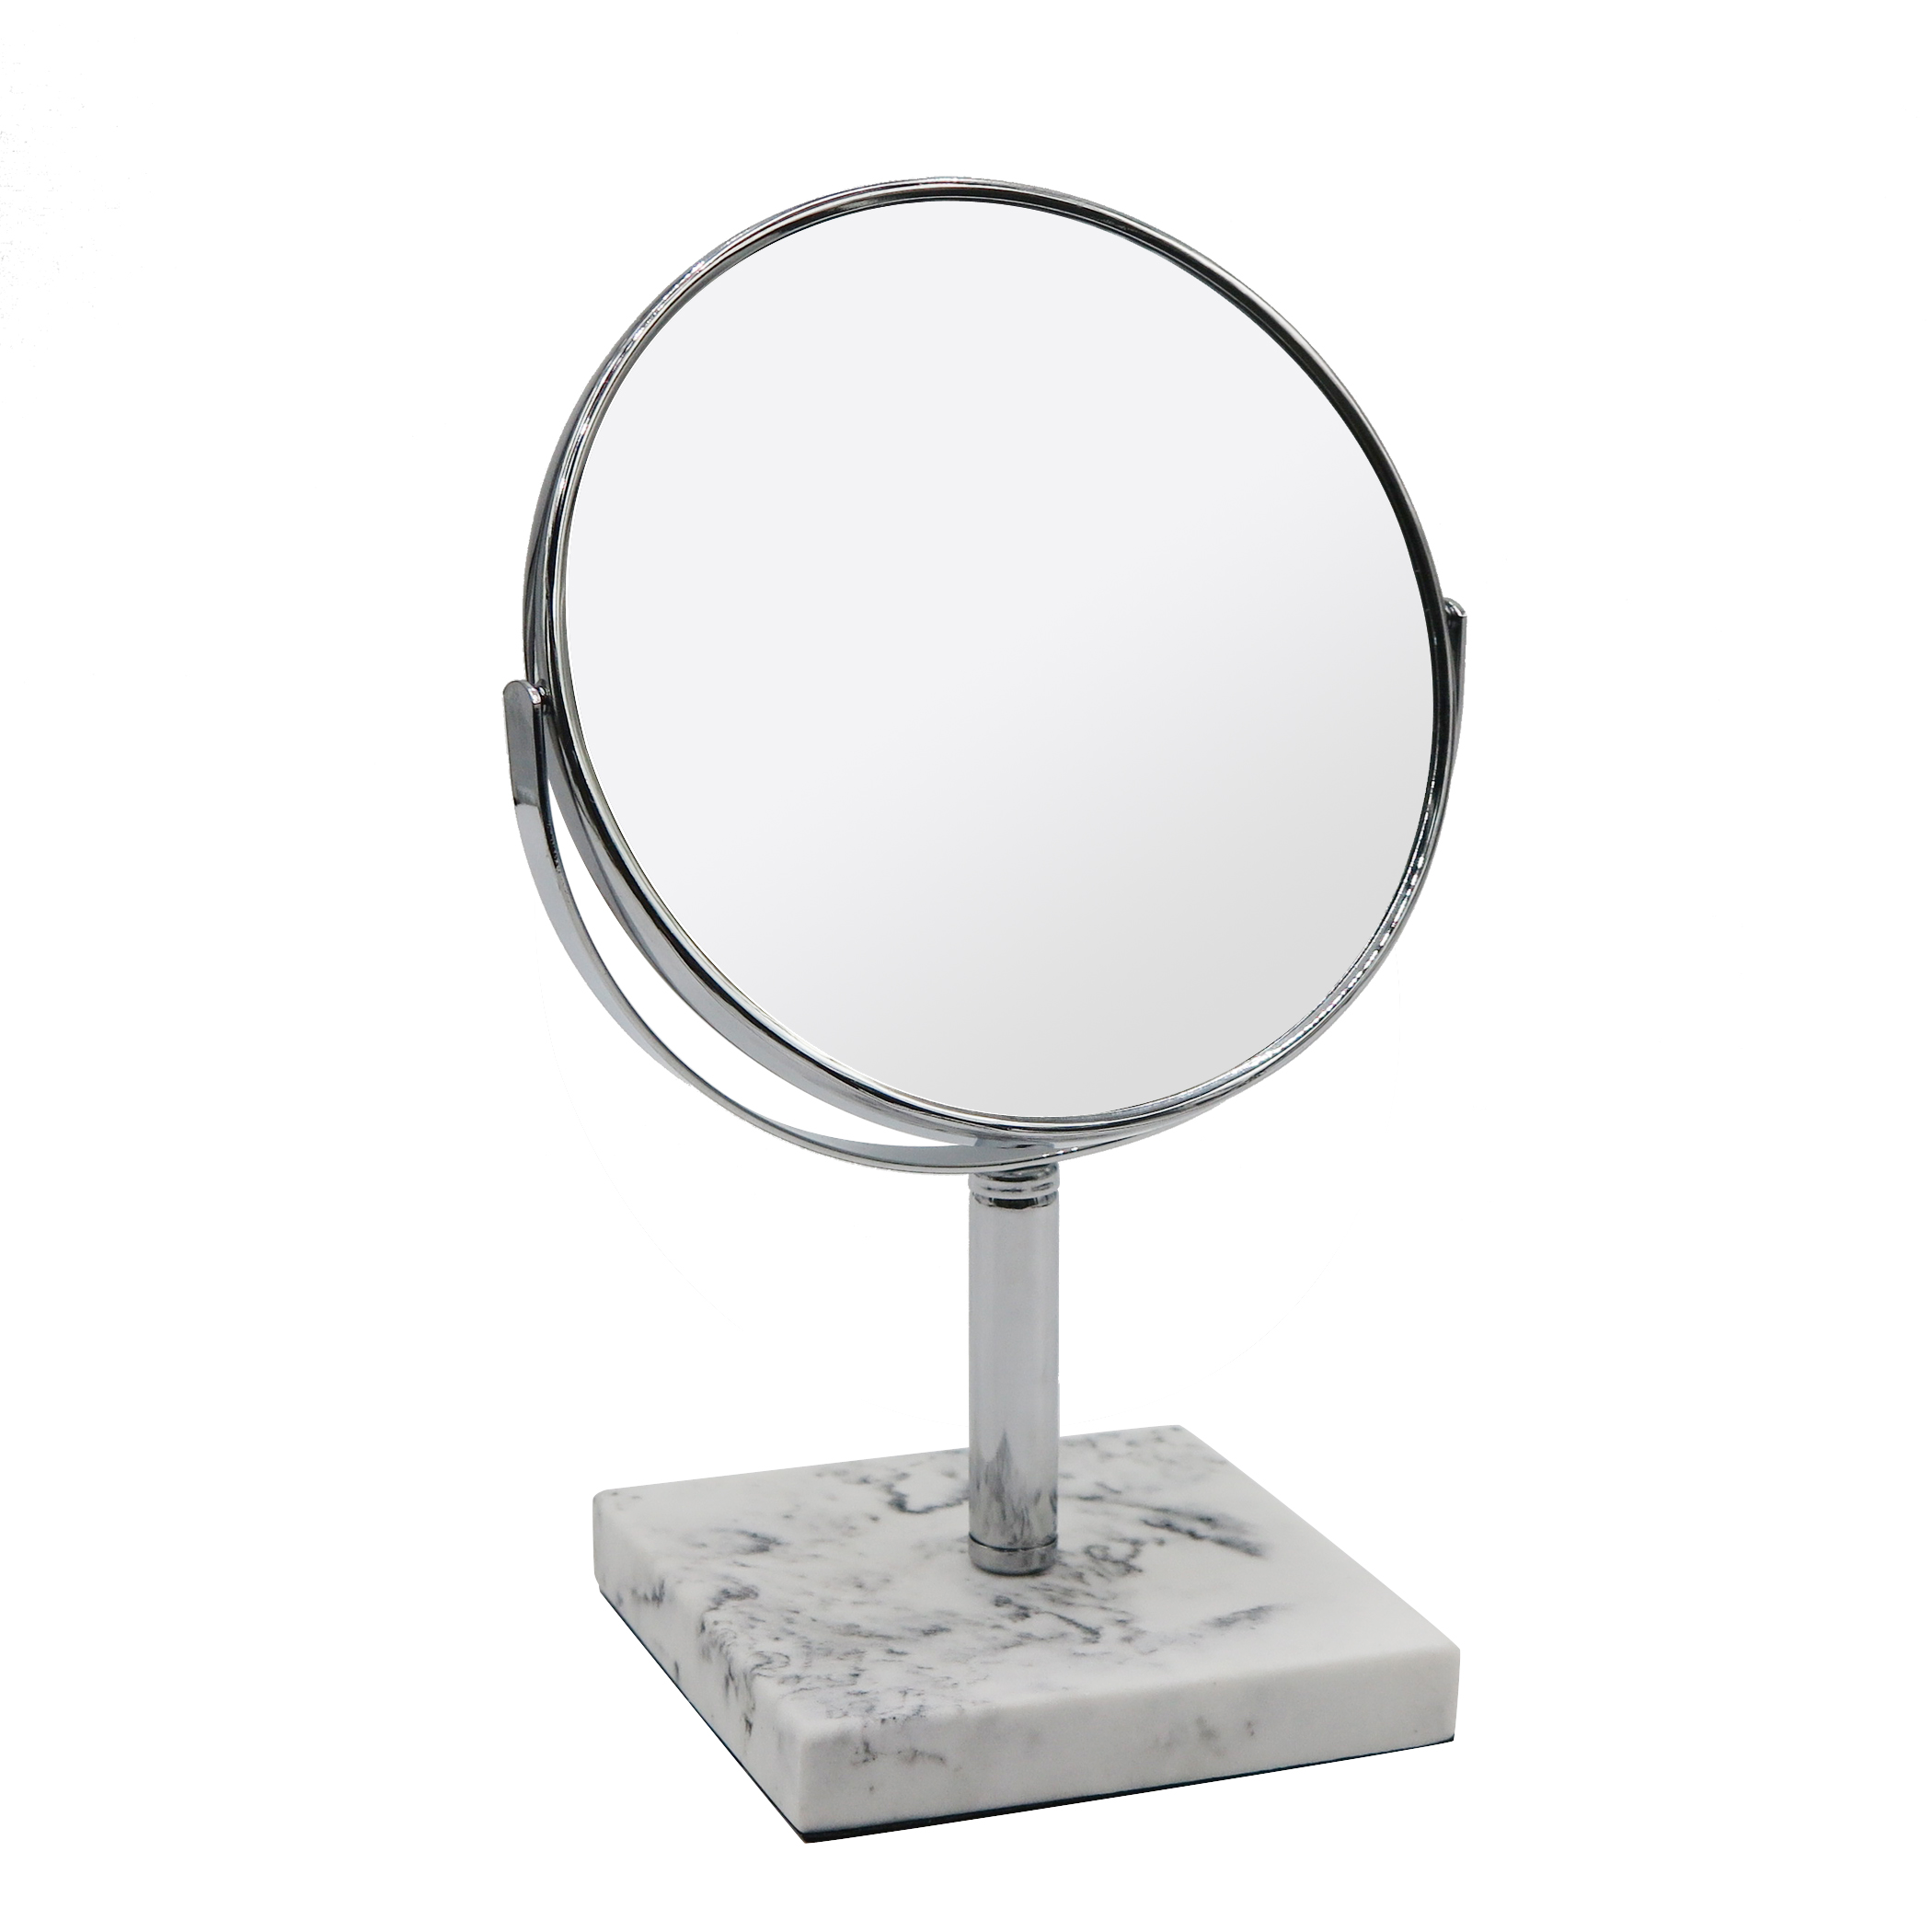 Better Homes & Gardens Faux Marble Double-Sided Vanity Mirror, White